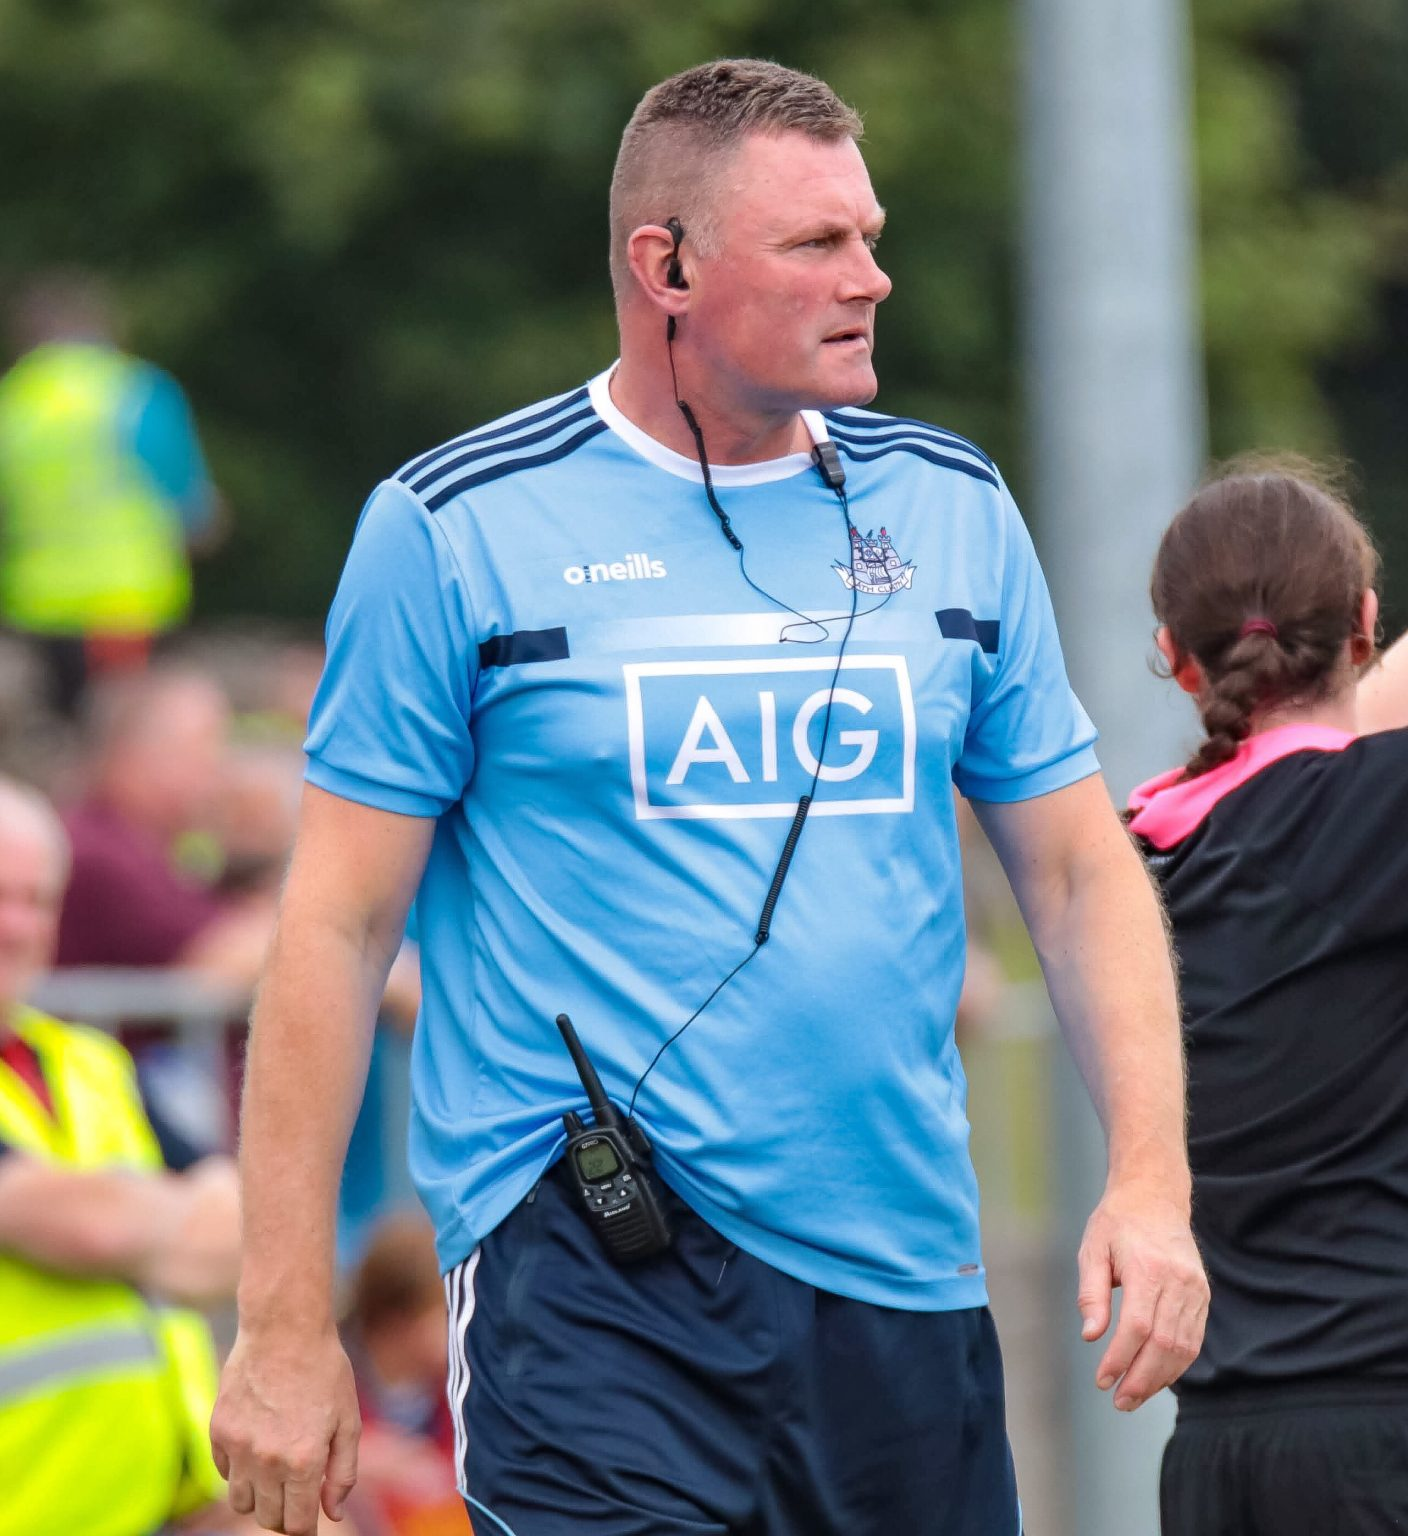 Dublin Manager Bohan in a sky blue top patrolling the sideline